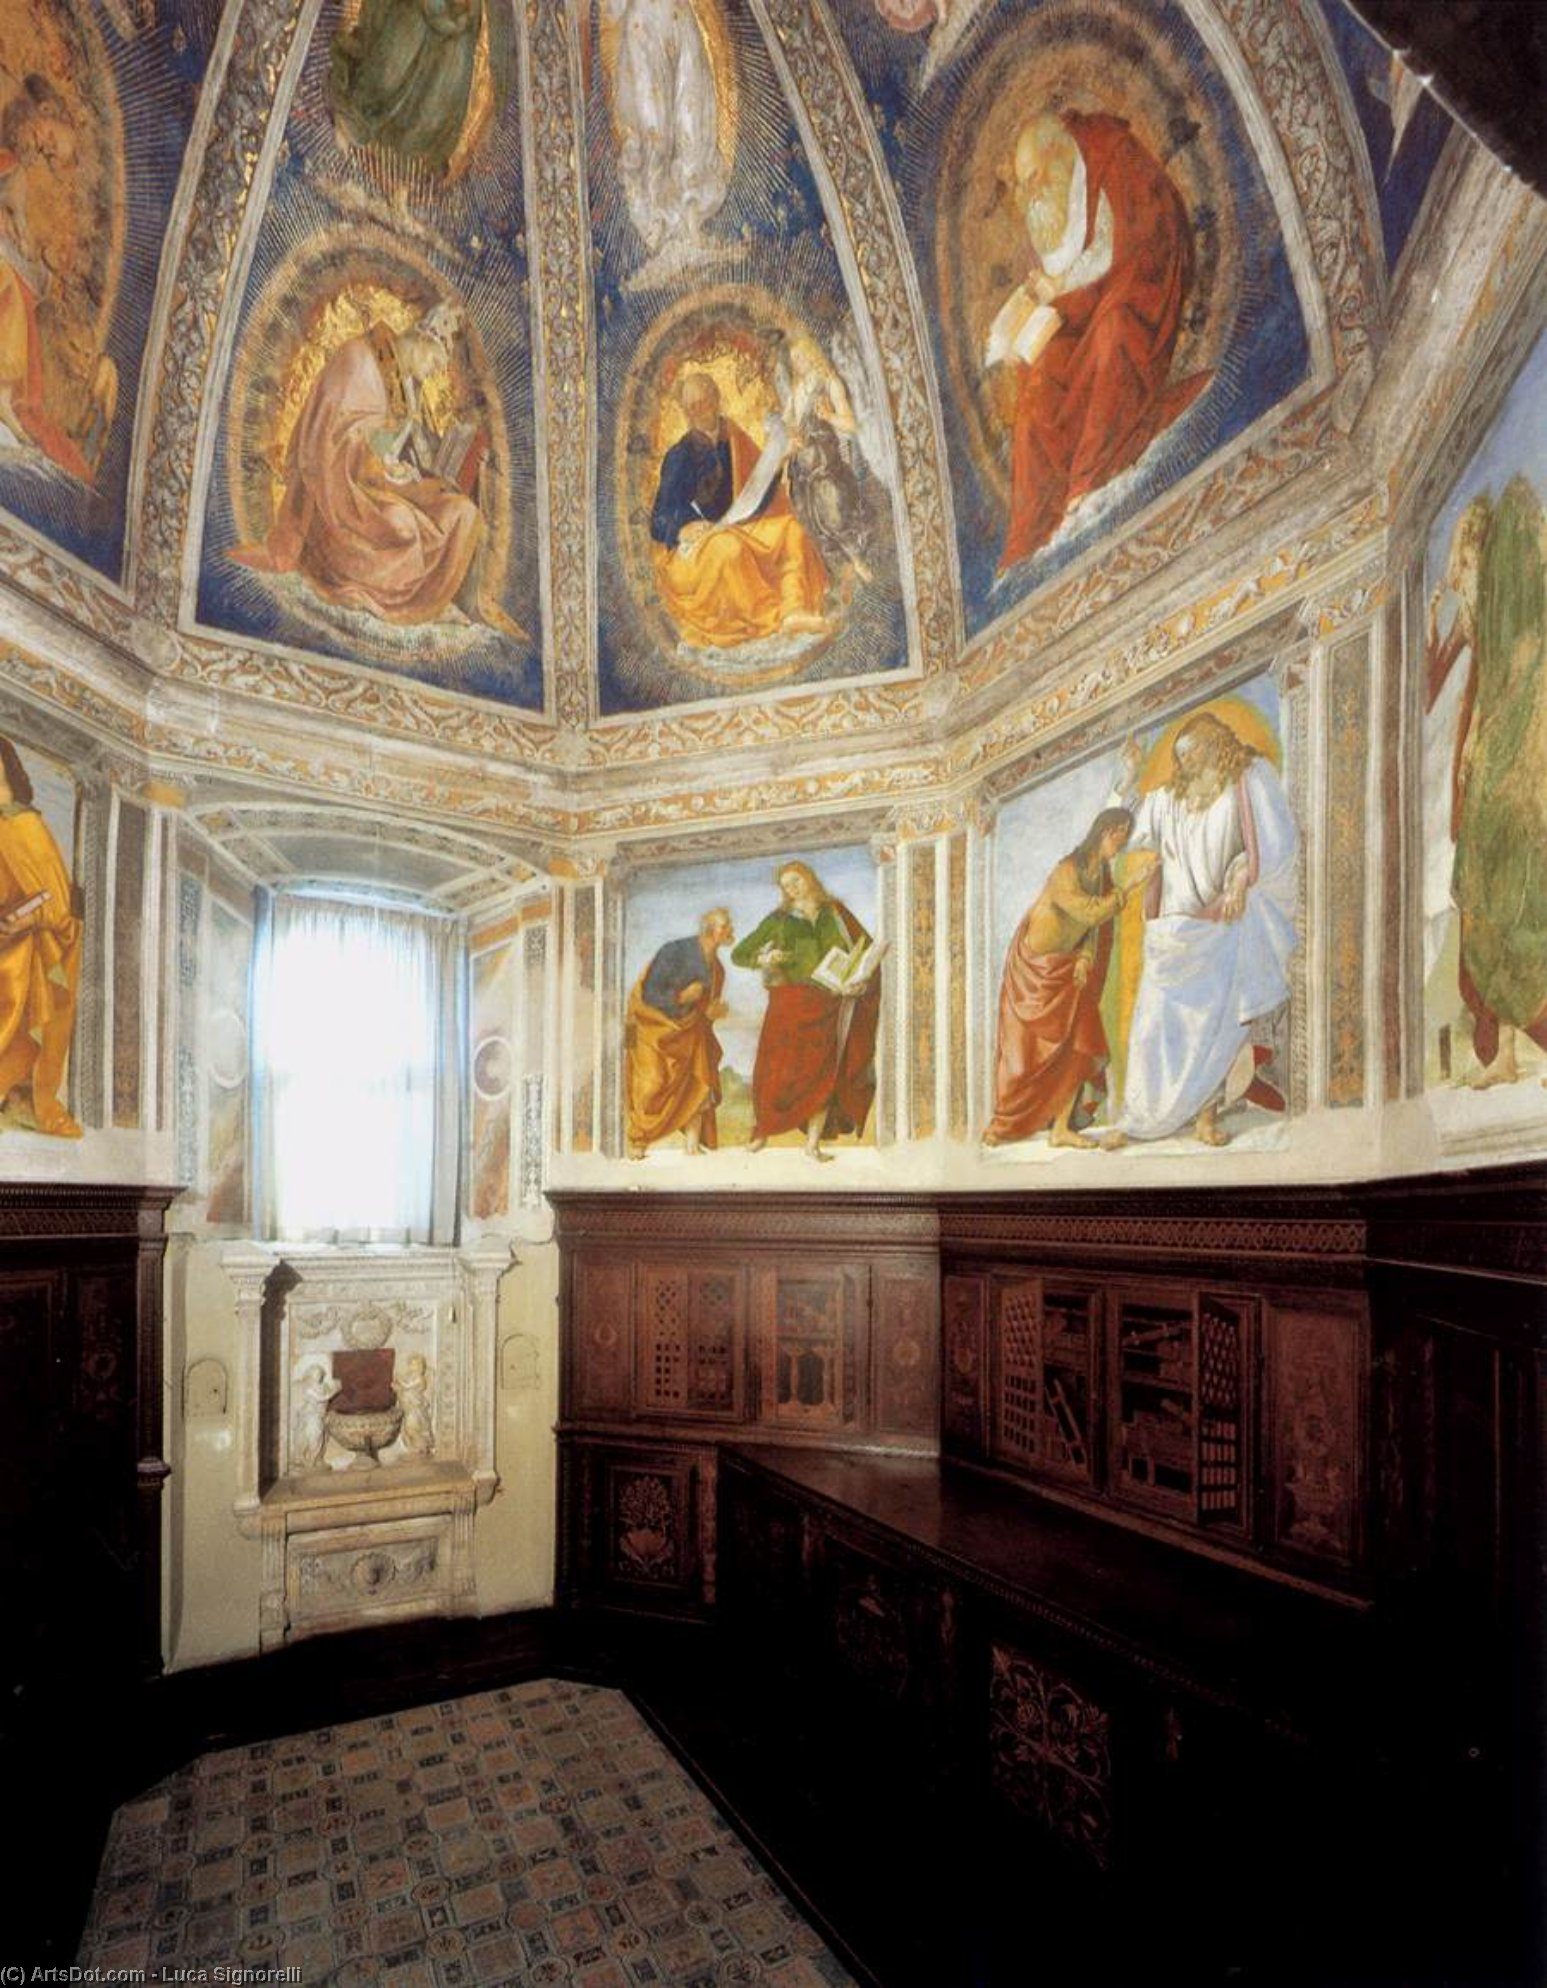 View of the Sacristy of St John, Frescoes by Luca Signorelli (1445-1523, Italy)